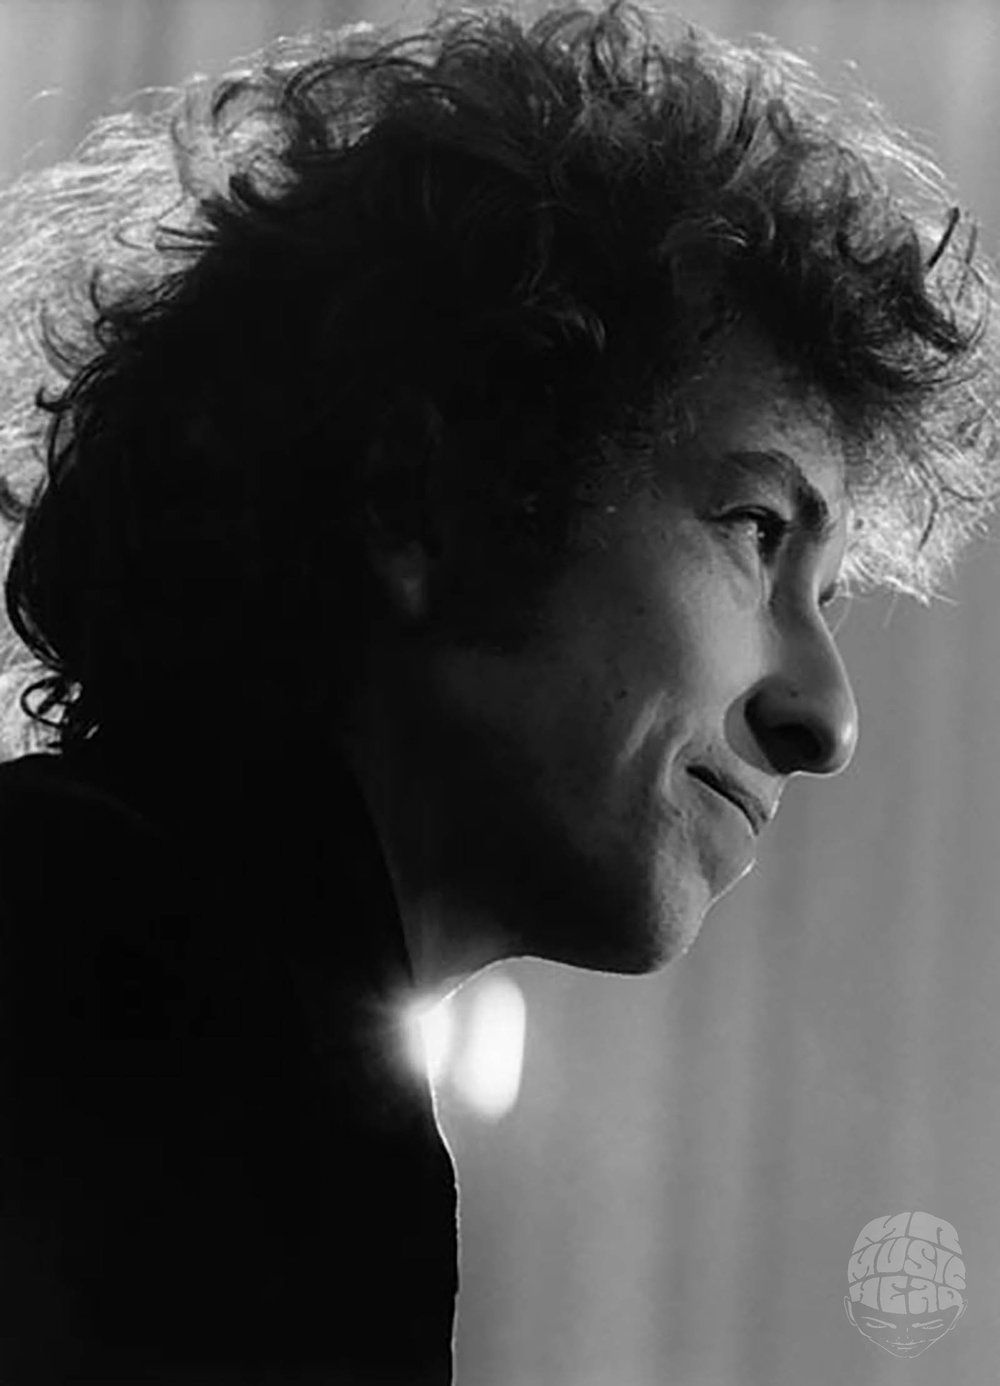 guy WEBSTER_bob dylan.jpg